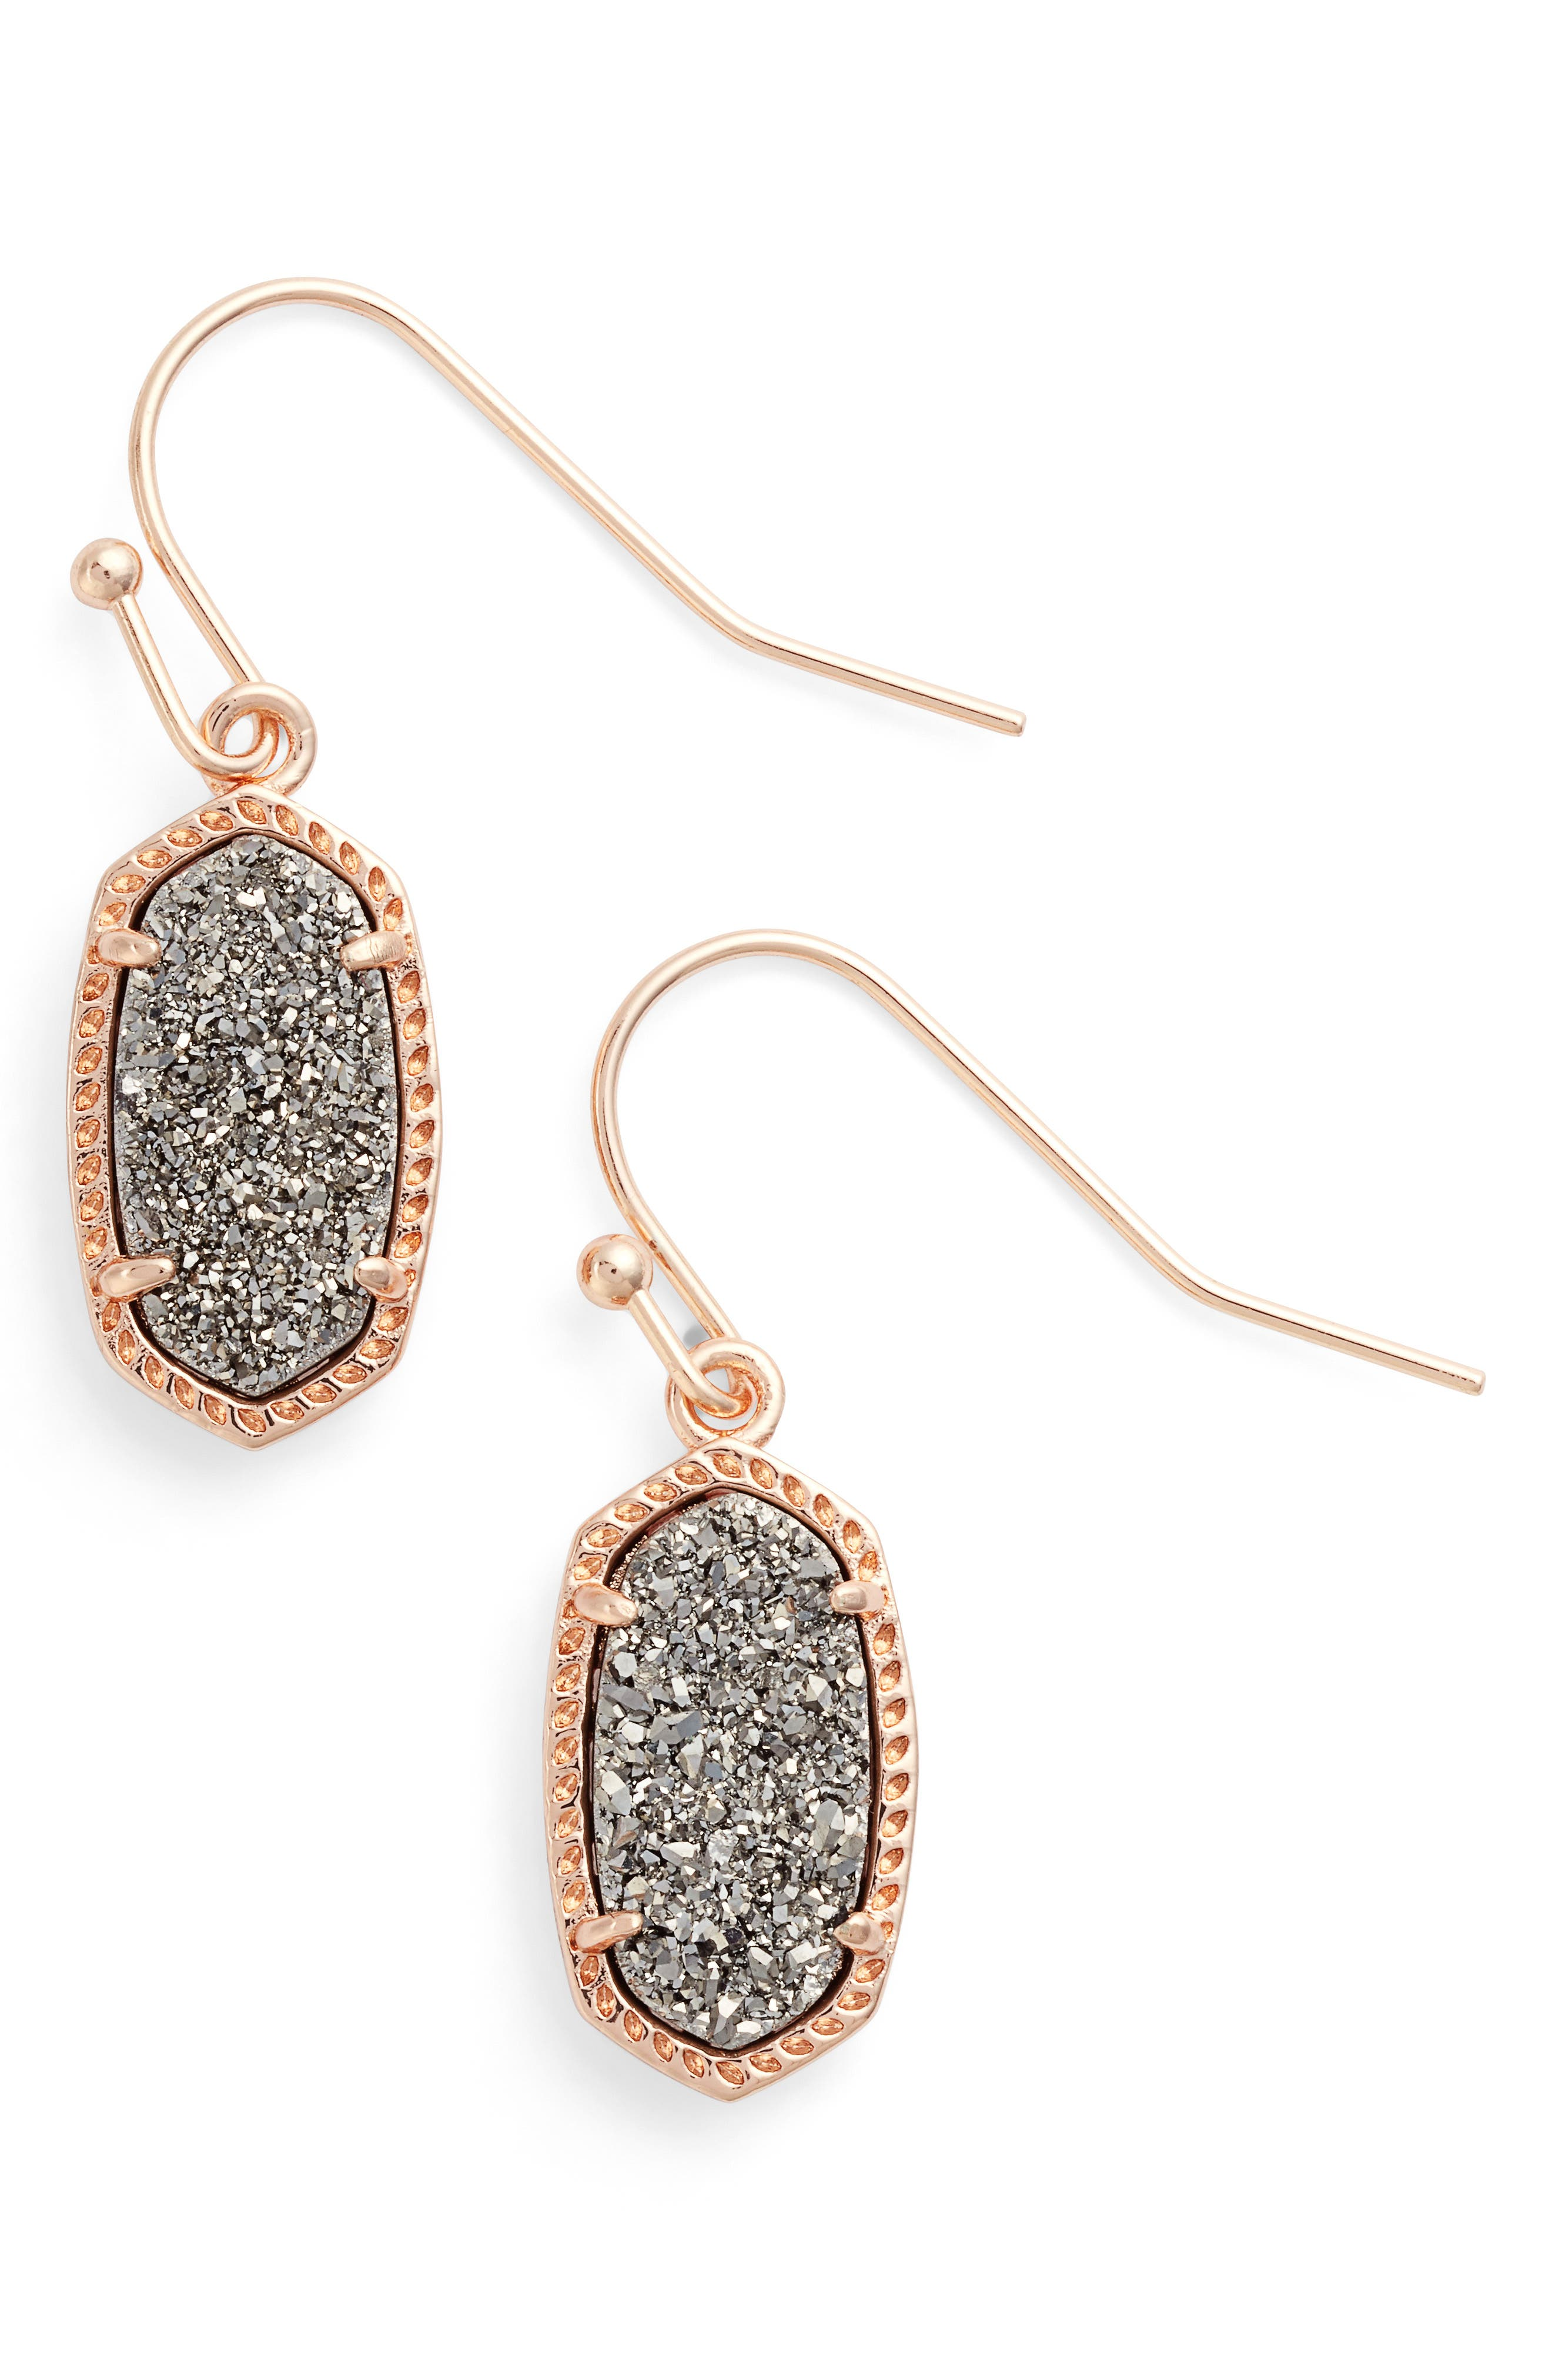 Lee Small Drop Earrings,                         Main,                         color, Platinum Drusy/ Rose Gold